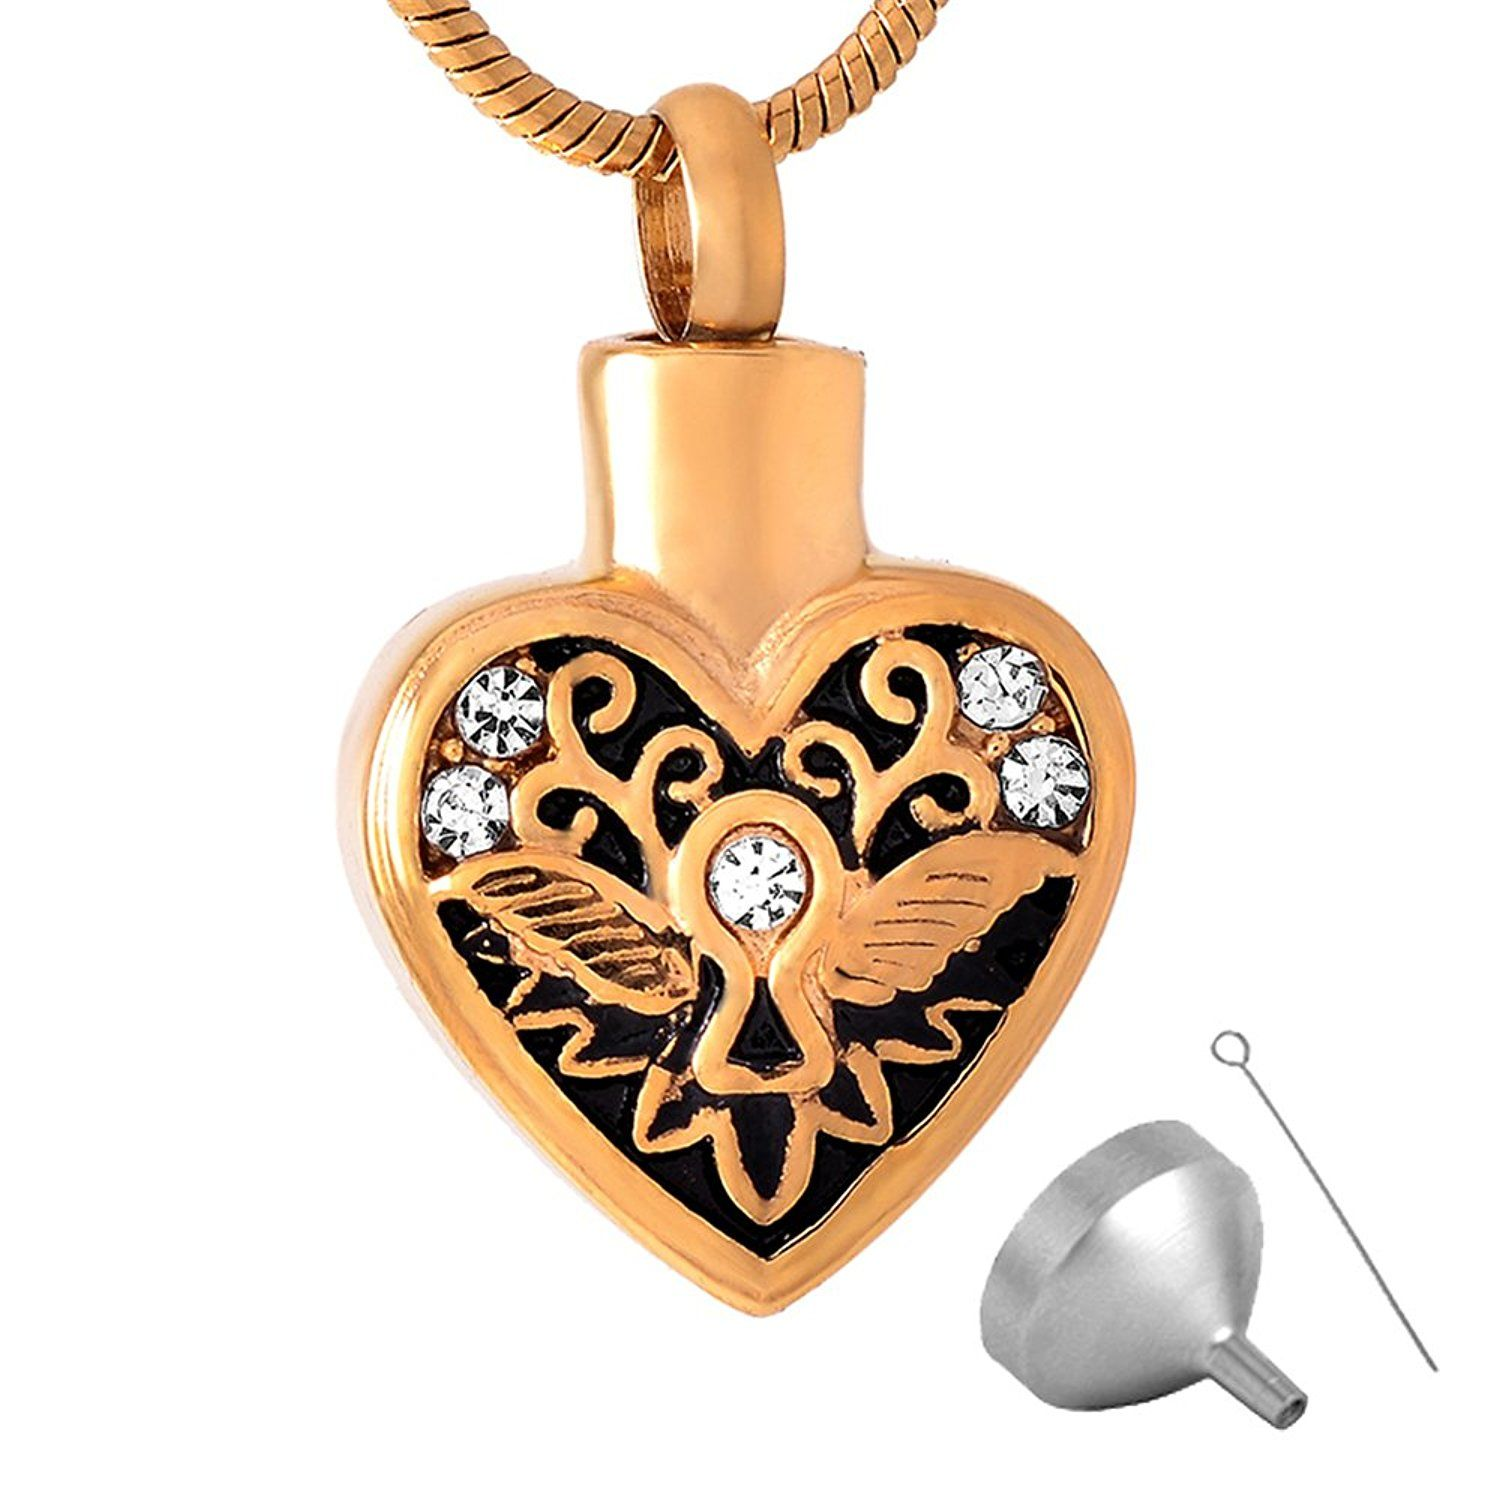 316l stainless steel heart cremation jewelry ashes pendant with 316l stainless steel heart cremation jewelry ashes pendant with snack chain click image to mozeypictures Choice Image